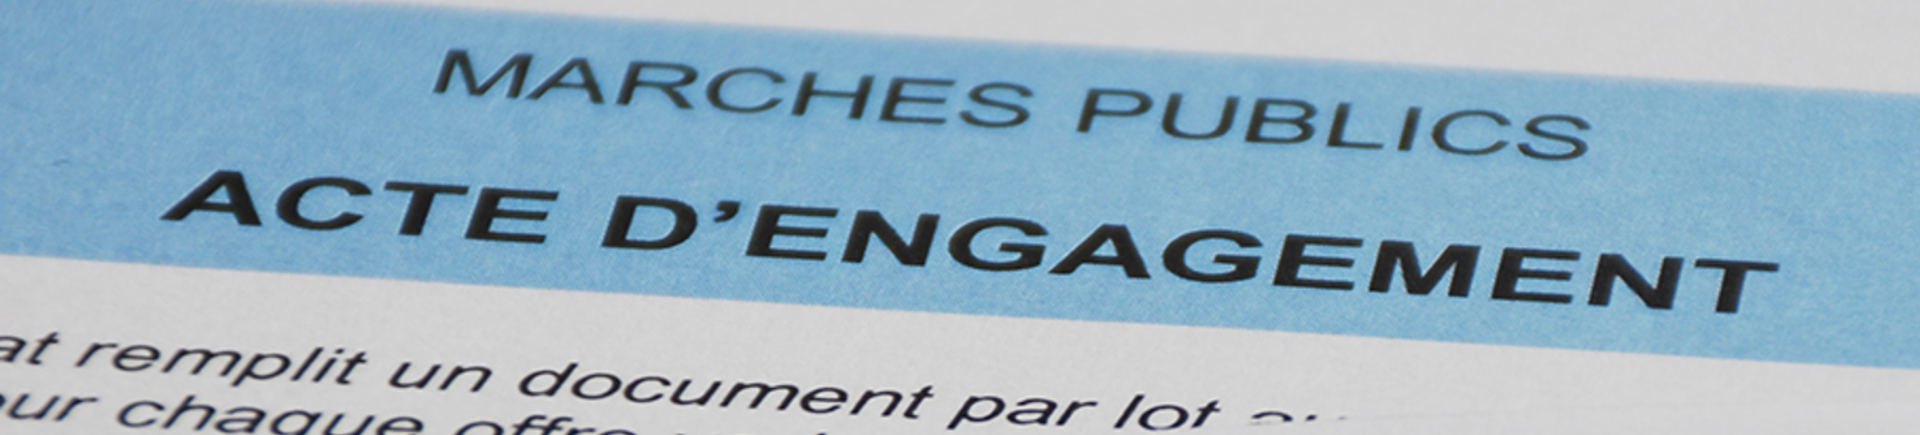 consultation-acte-engagement-marches-publics_header